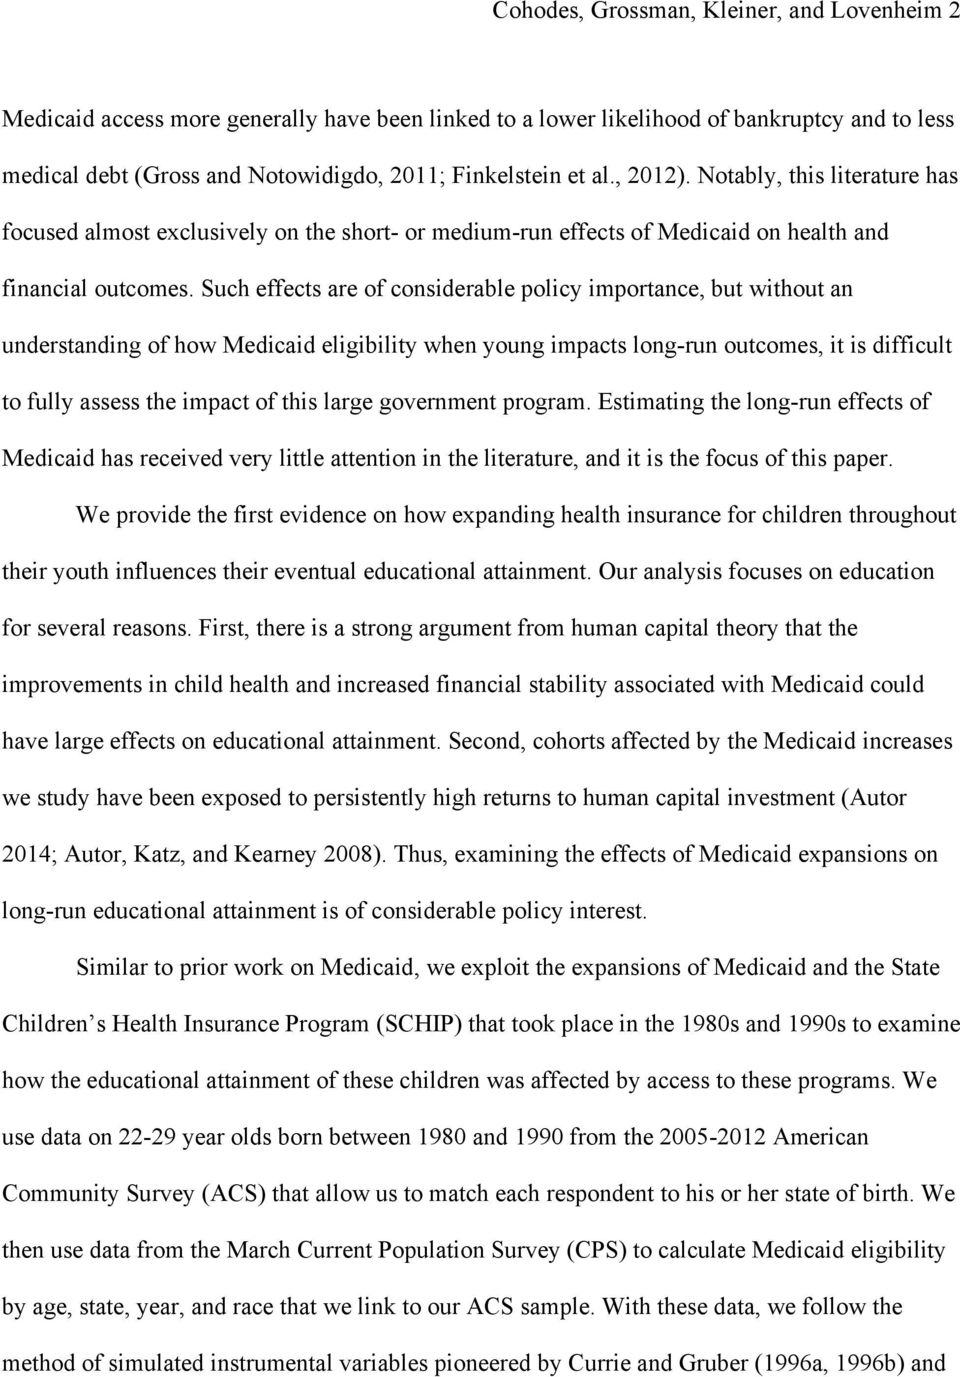 Such effects are of considerable policy importance, but without an understanding of how Medicaid eligibility when young impacts long-run outcomes, it is difficult to fully assess the impact of this